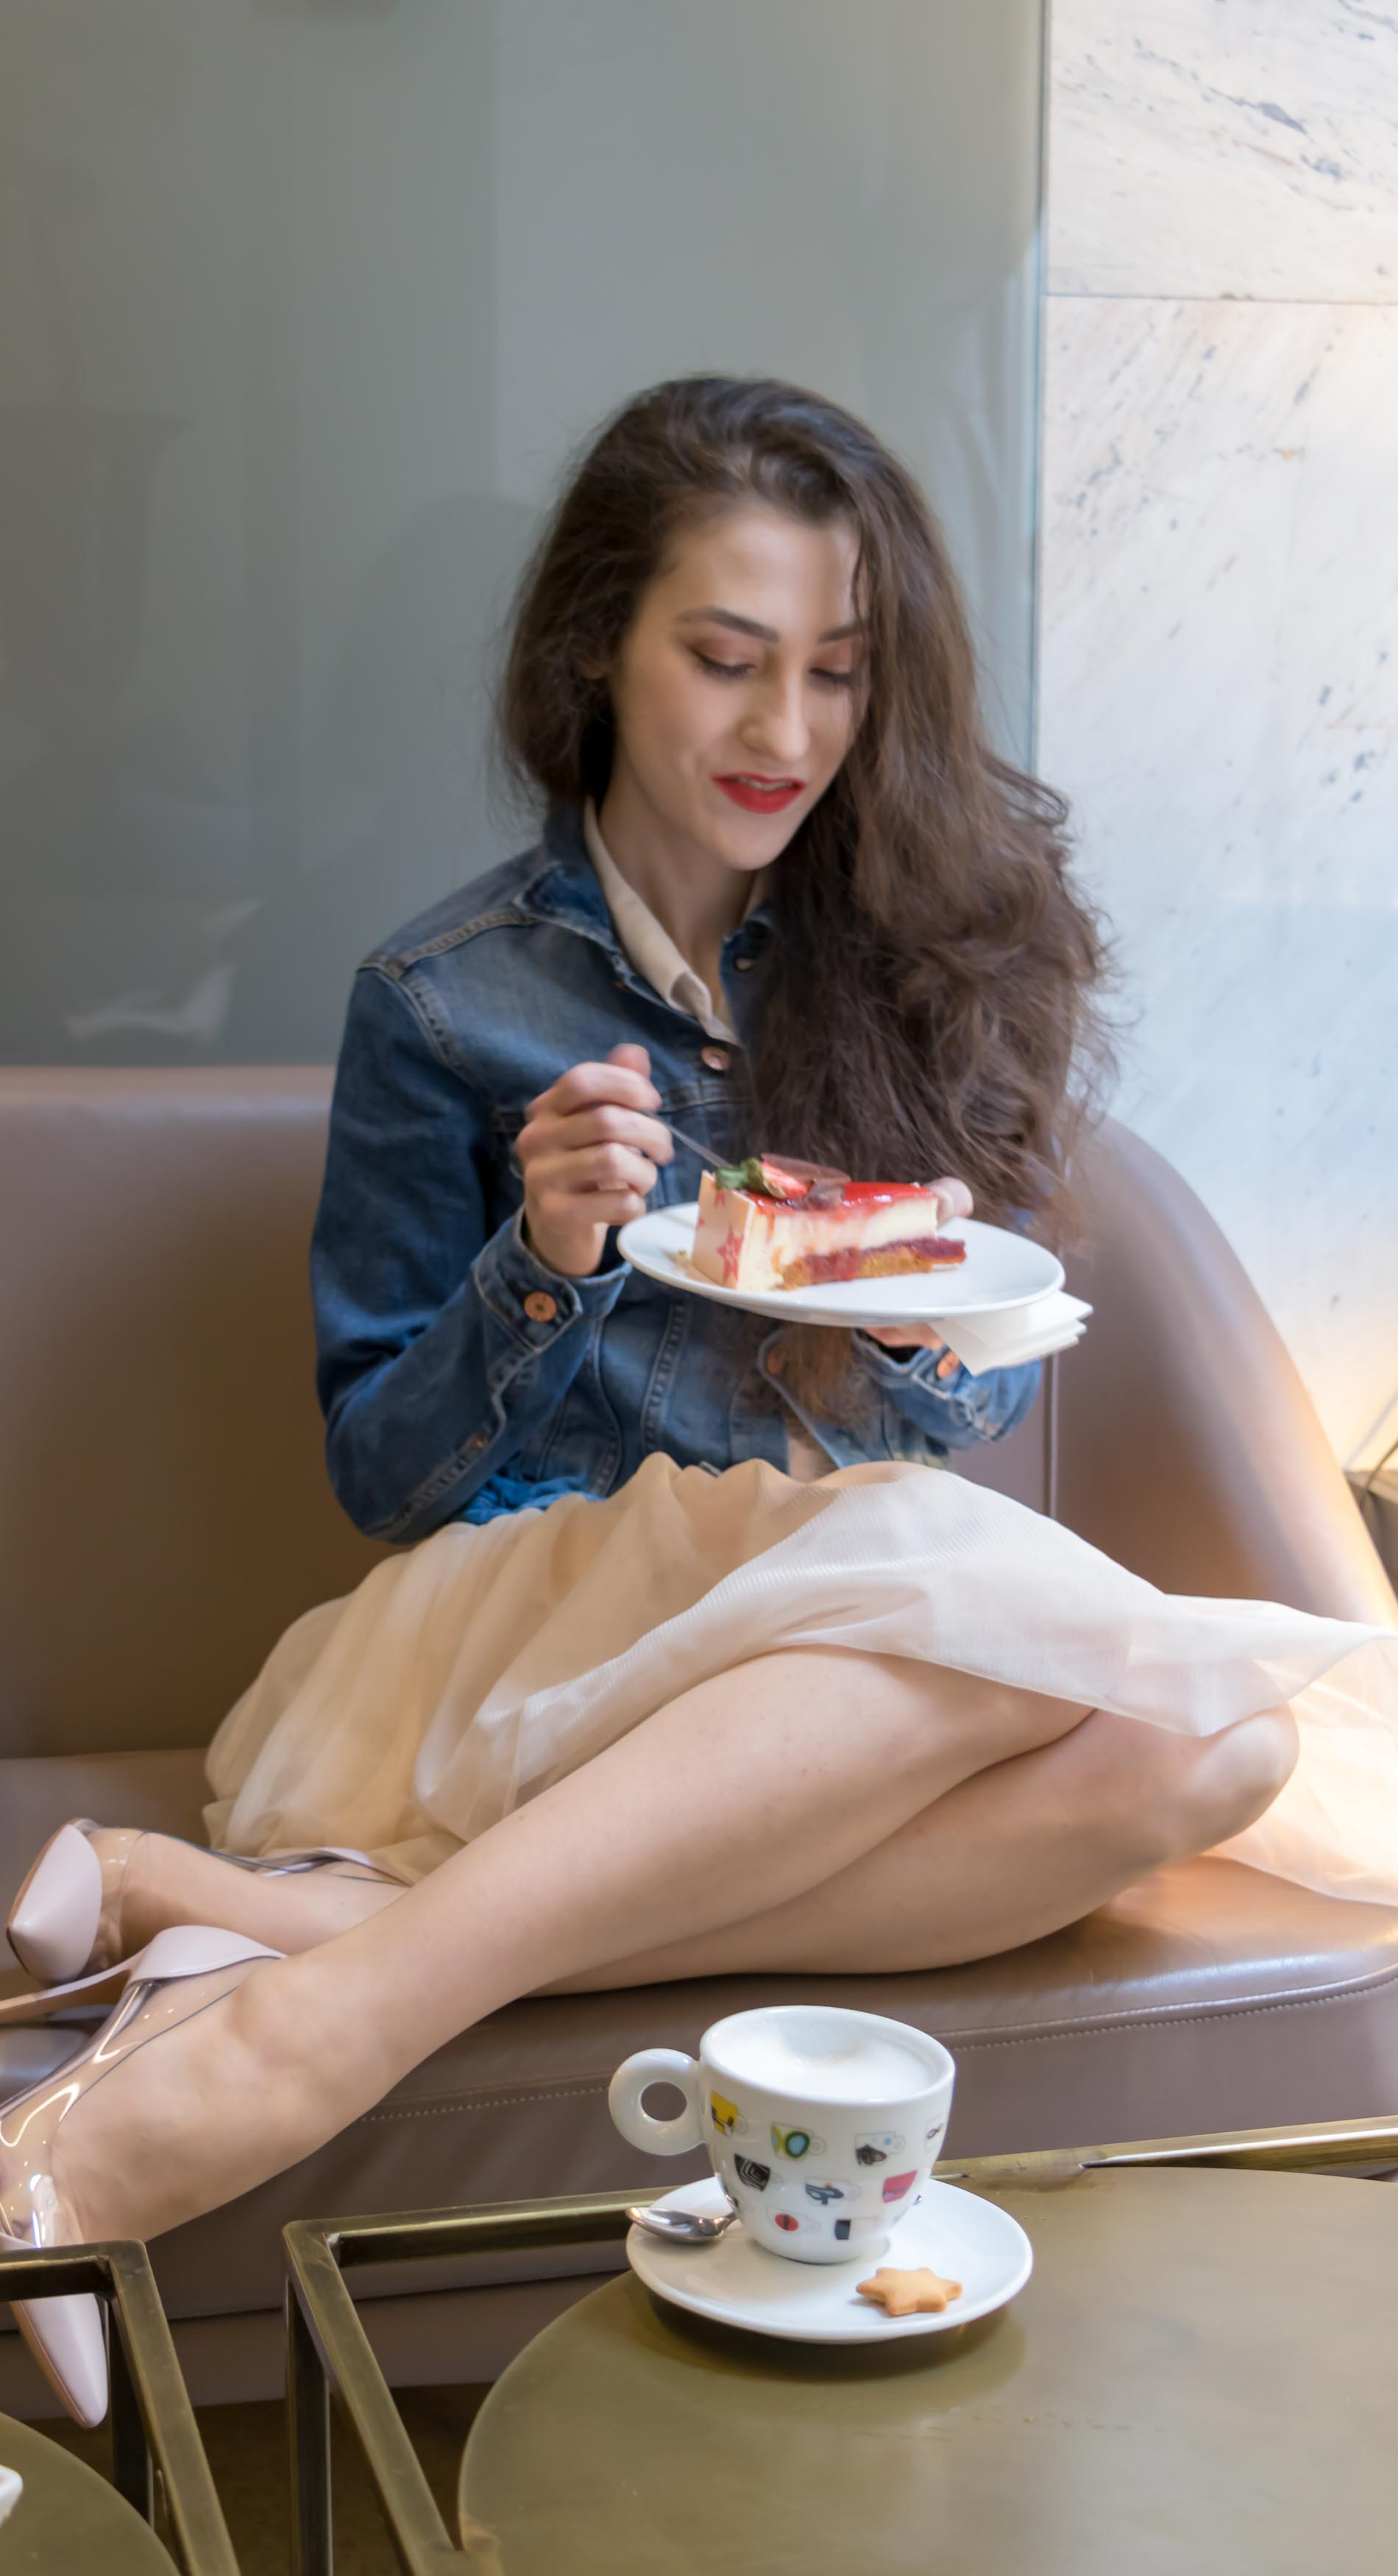 Fashion Blogger Veronika Lipar of Brunette from Wall Street wearing blush Gianvito Rossi Plexi 100 leather and PVC pump shoes, blush tulle Zara skirt, blue denim jacket from H&M while eating cake